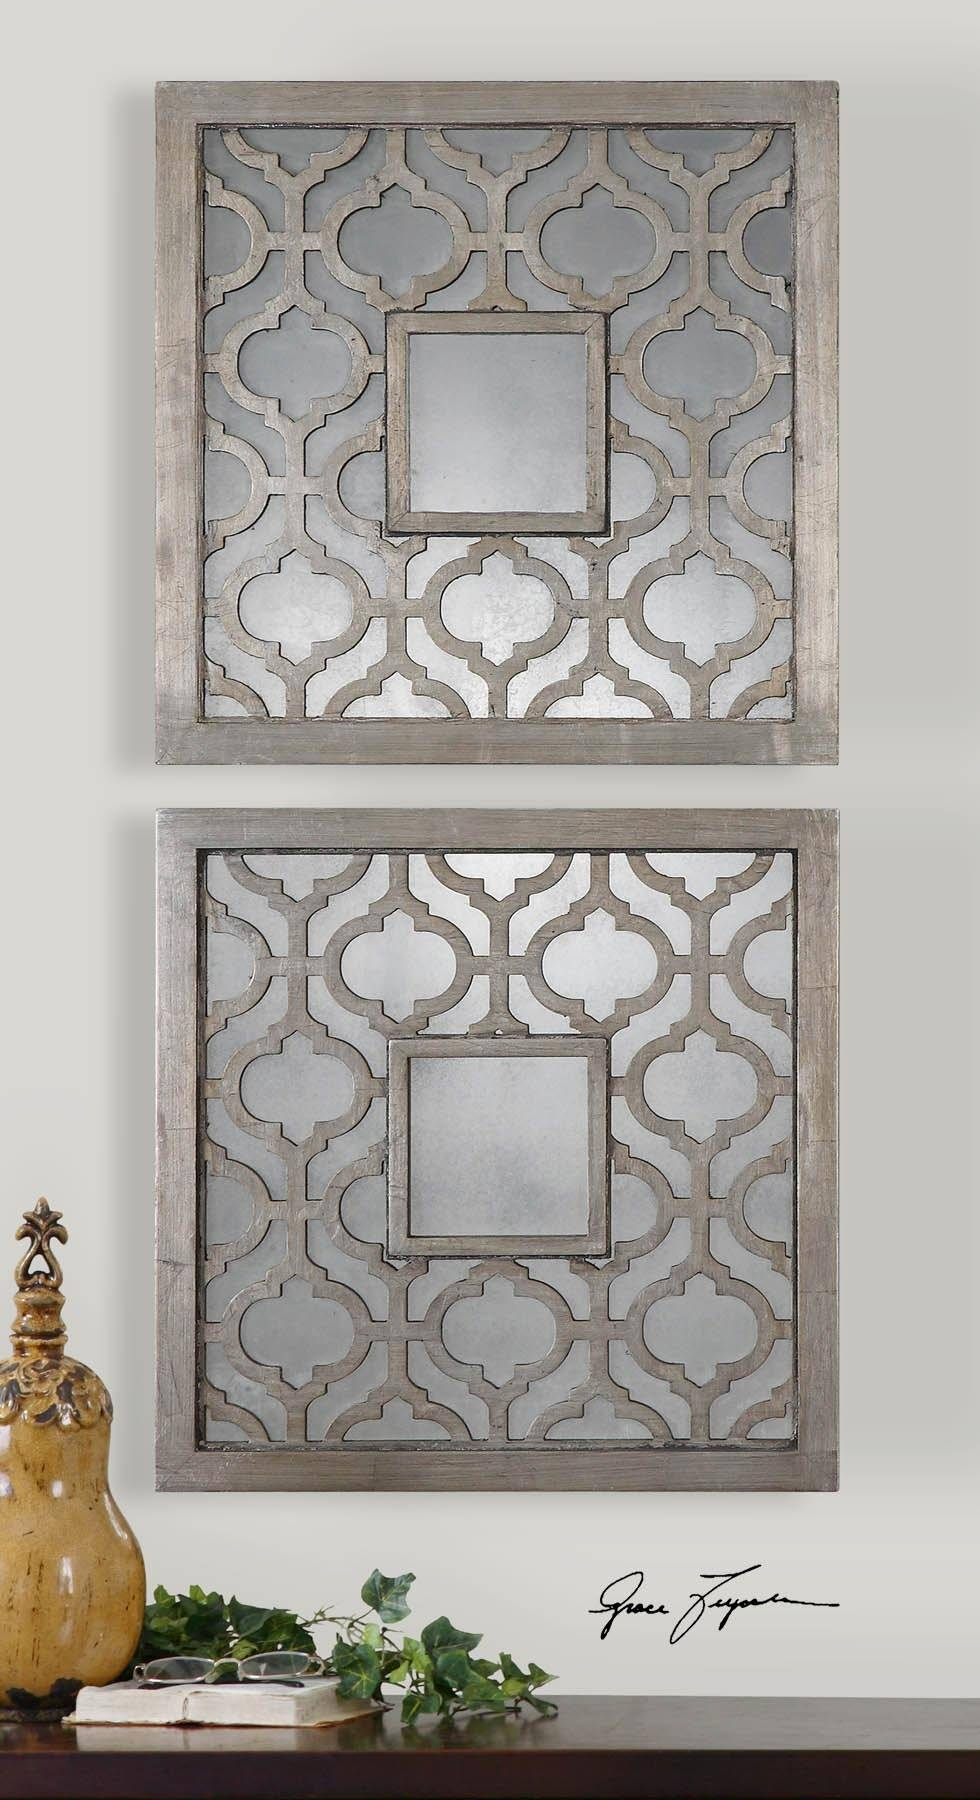 Wall Art Designs: Dimensional Wall Art Moroccan Trellis Antiqued Pertaining To Most Current Metal Framed Wall Art (View 11 of 20)